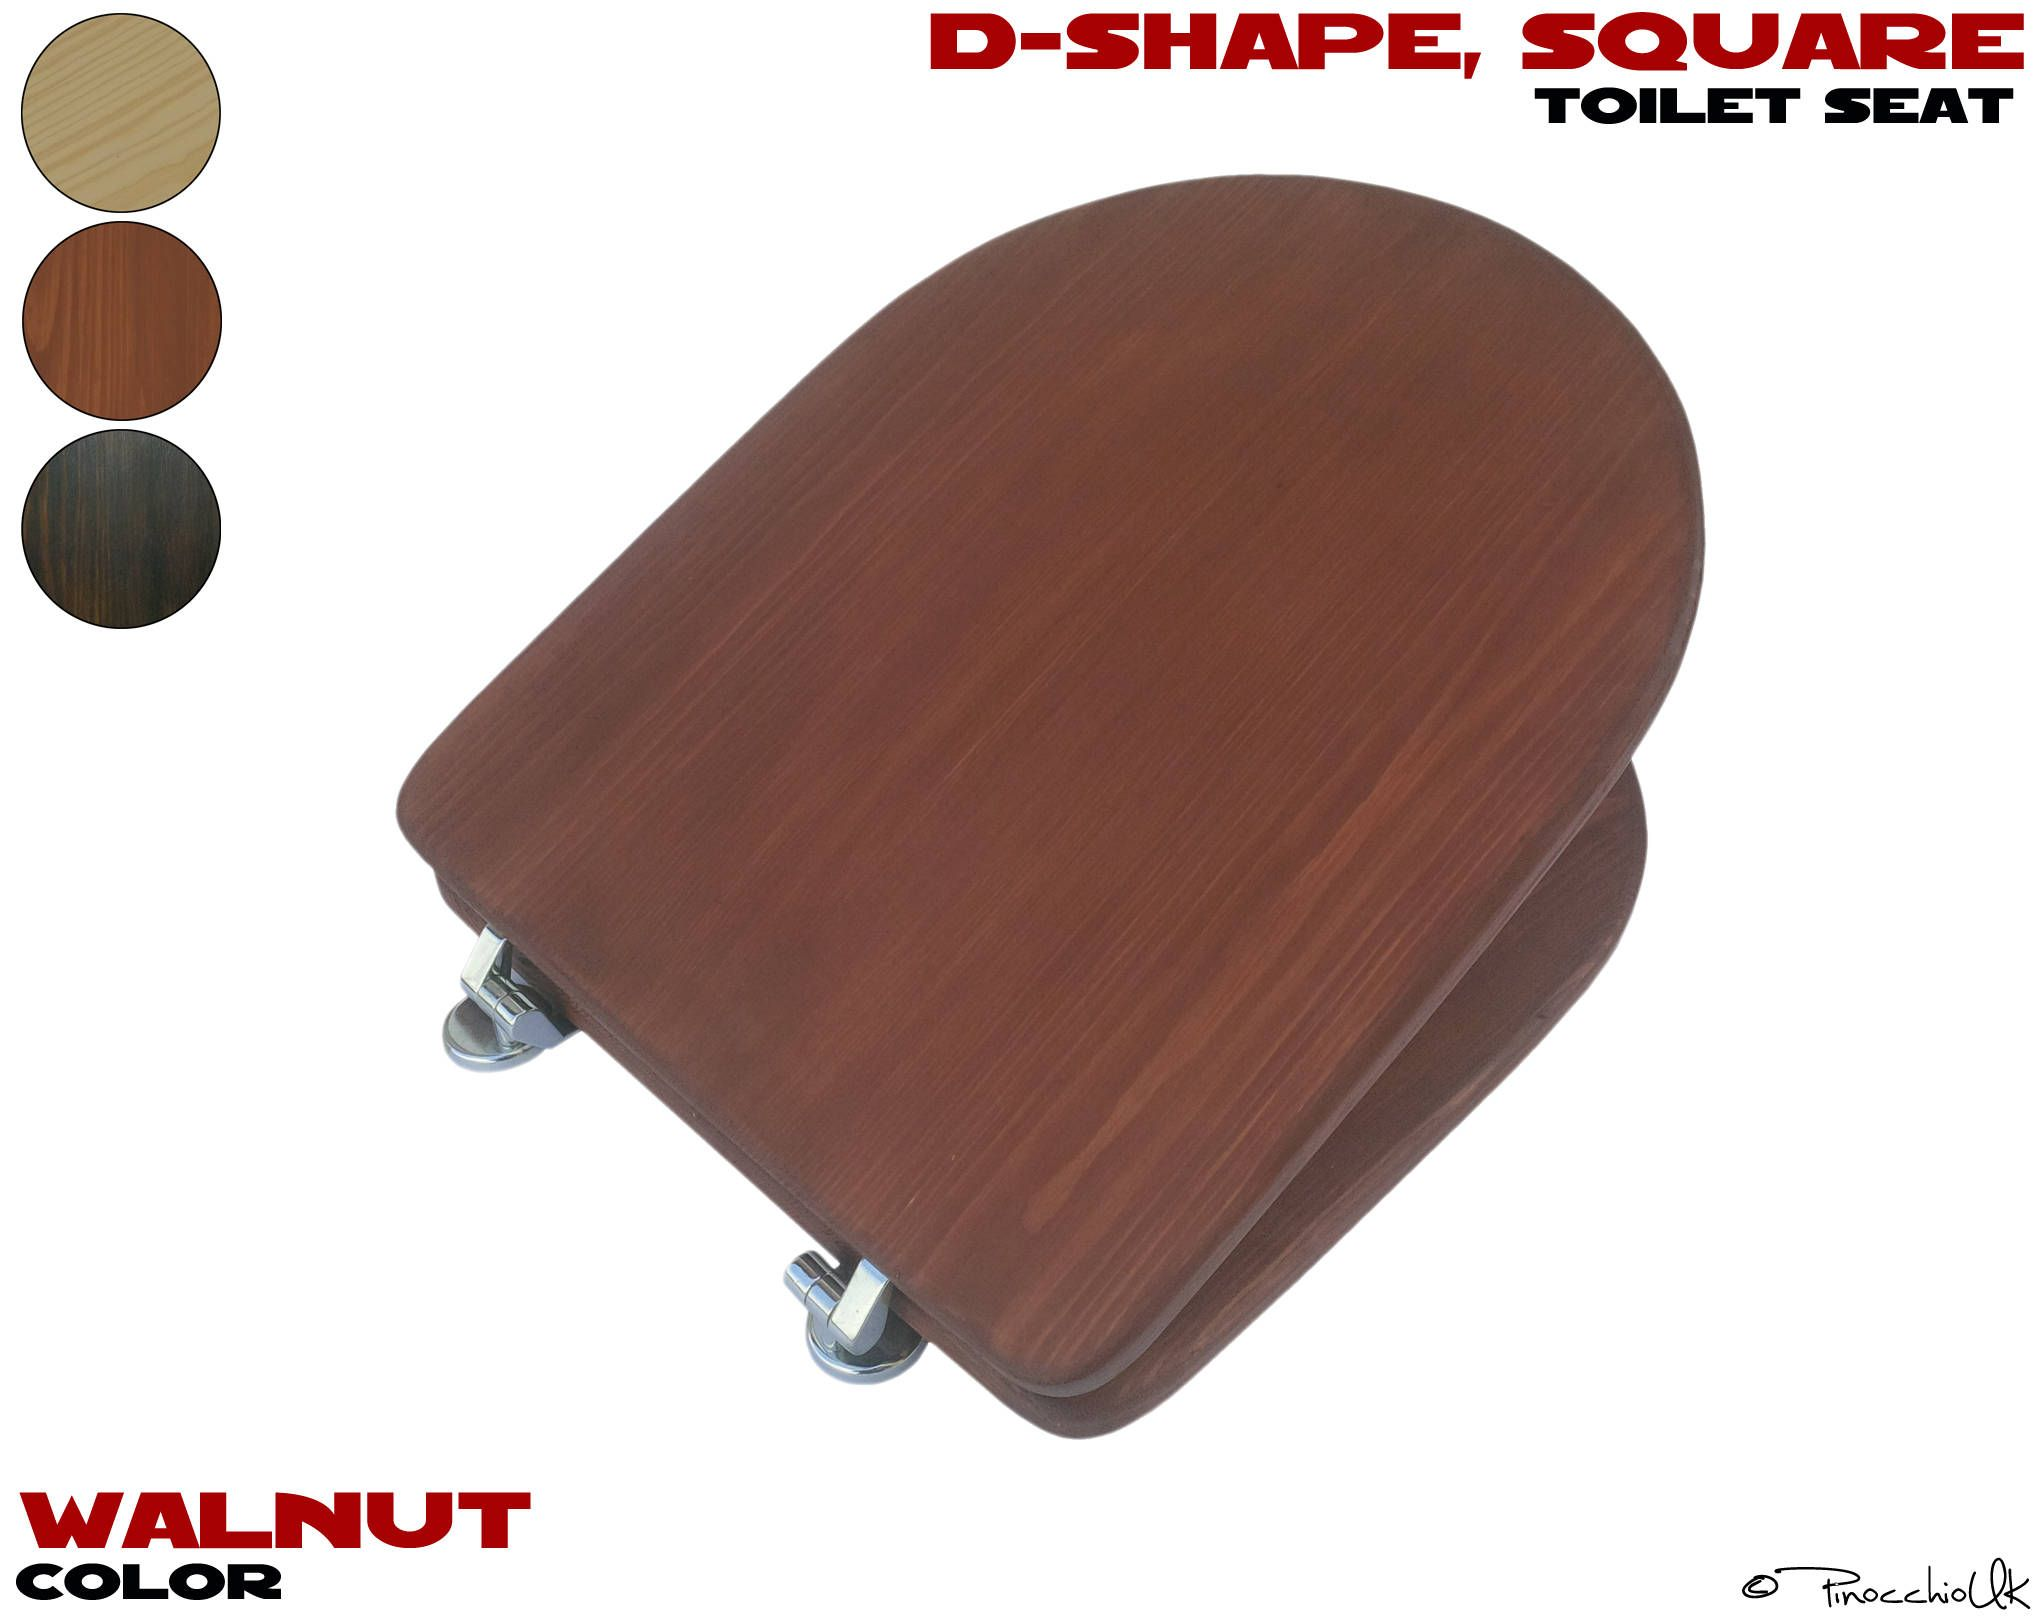 wooden d shaped toilet seat. Items Similar To Square Wooden Toilet Seat  3 Colors Choose D Shape Wood Rustic For Your Bathroom On Etsy Pin By PinocchioUK Wooden Pinterest Toilet